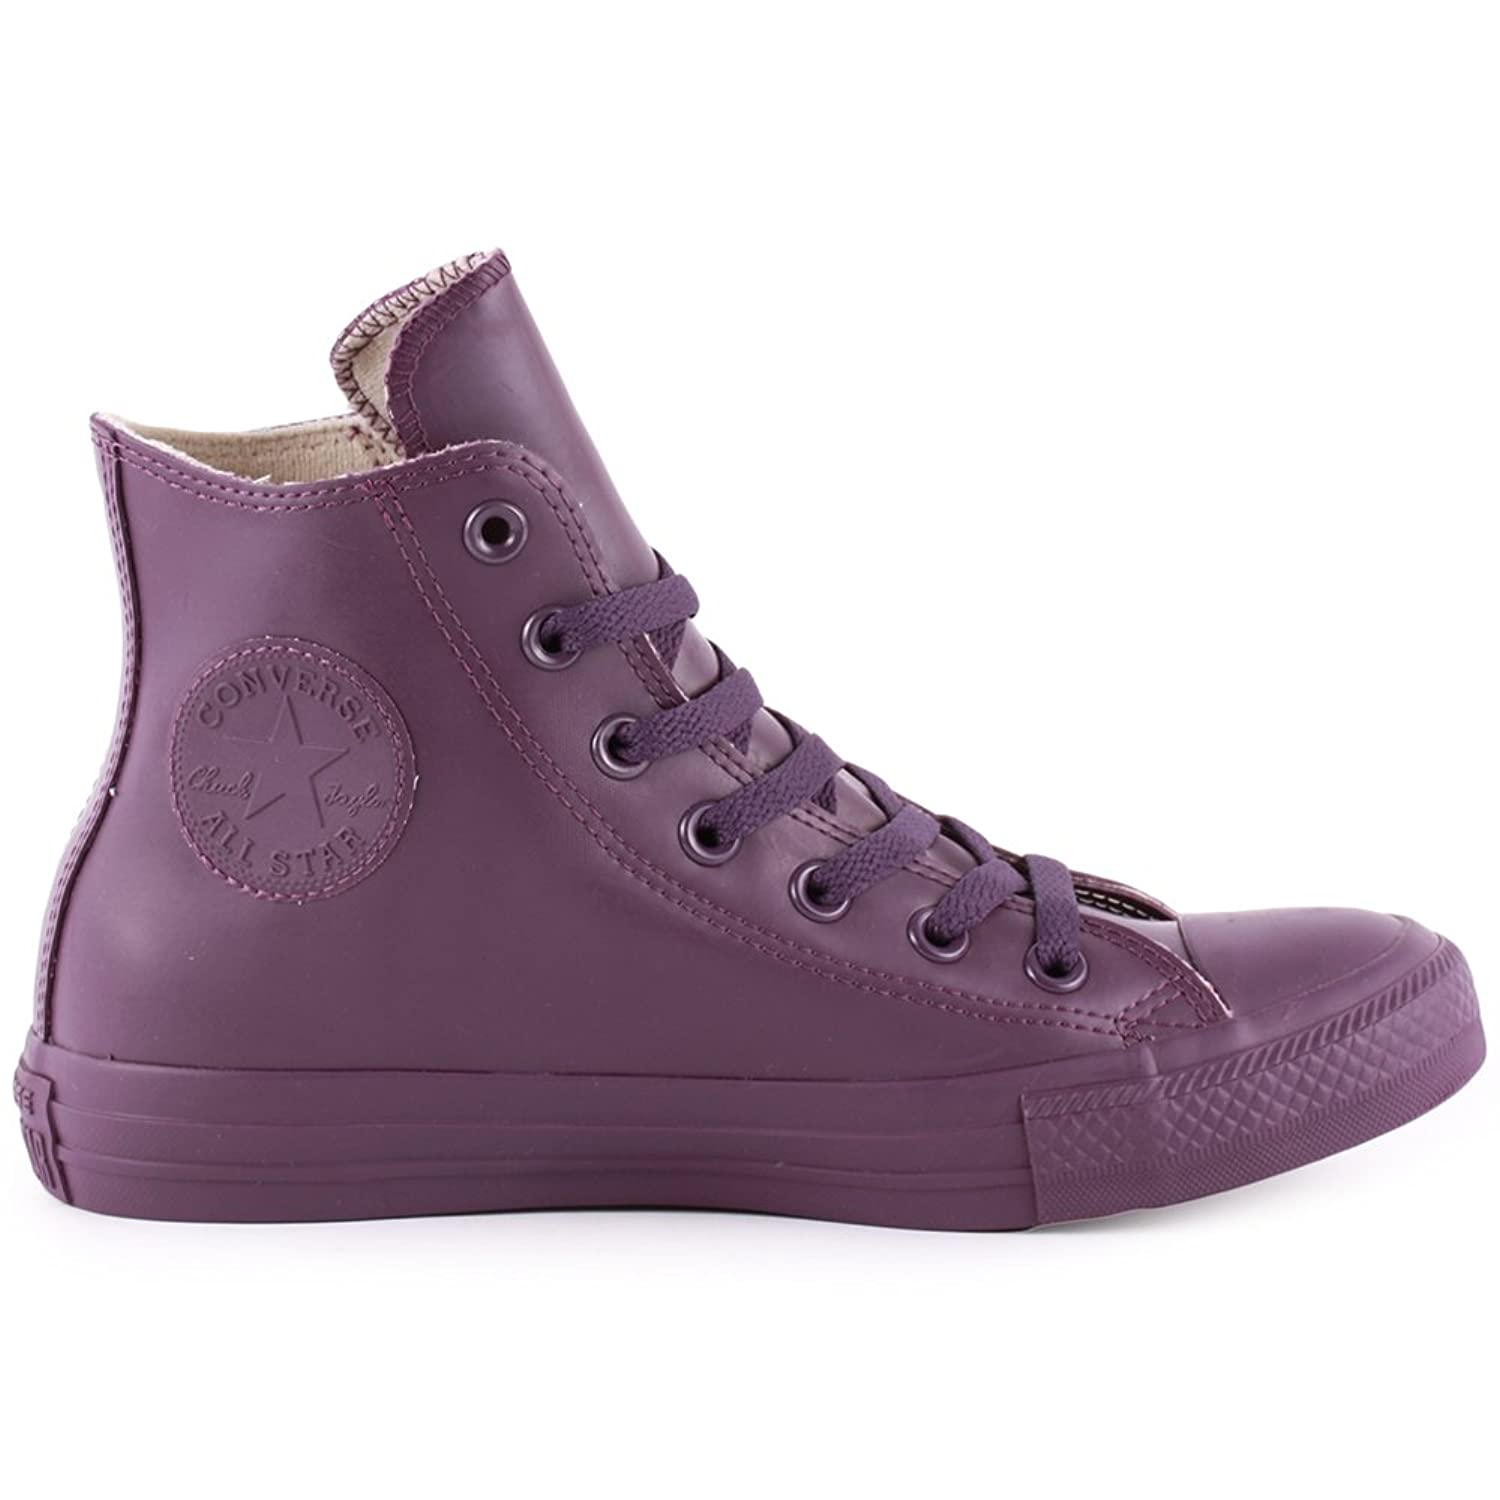 Chucks - CT RUBBER HI 144741C - Elderberry, Schuhgröße:36.5 Converse